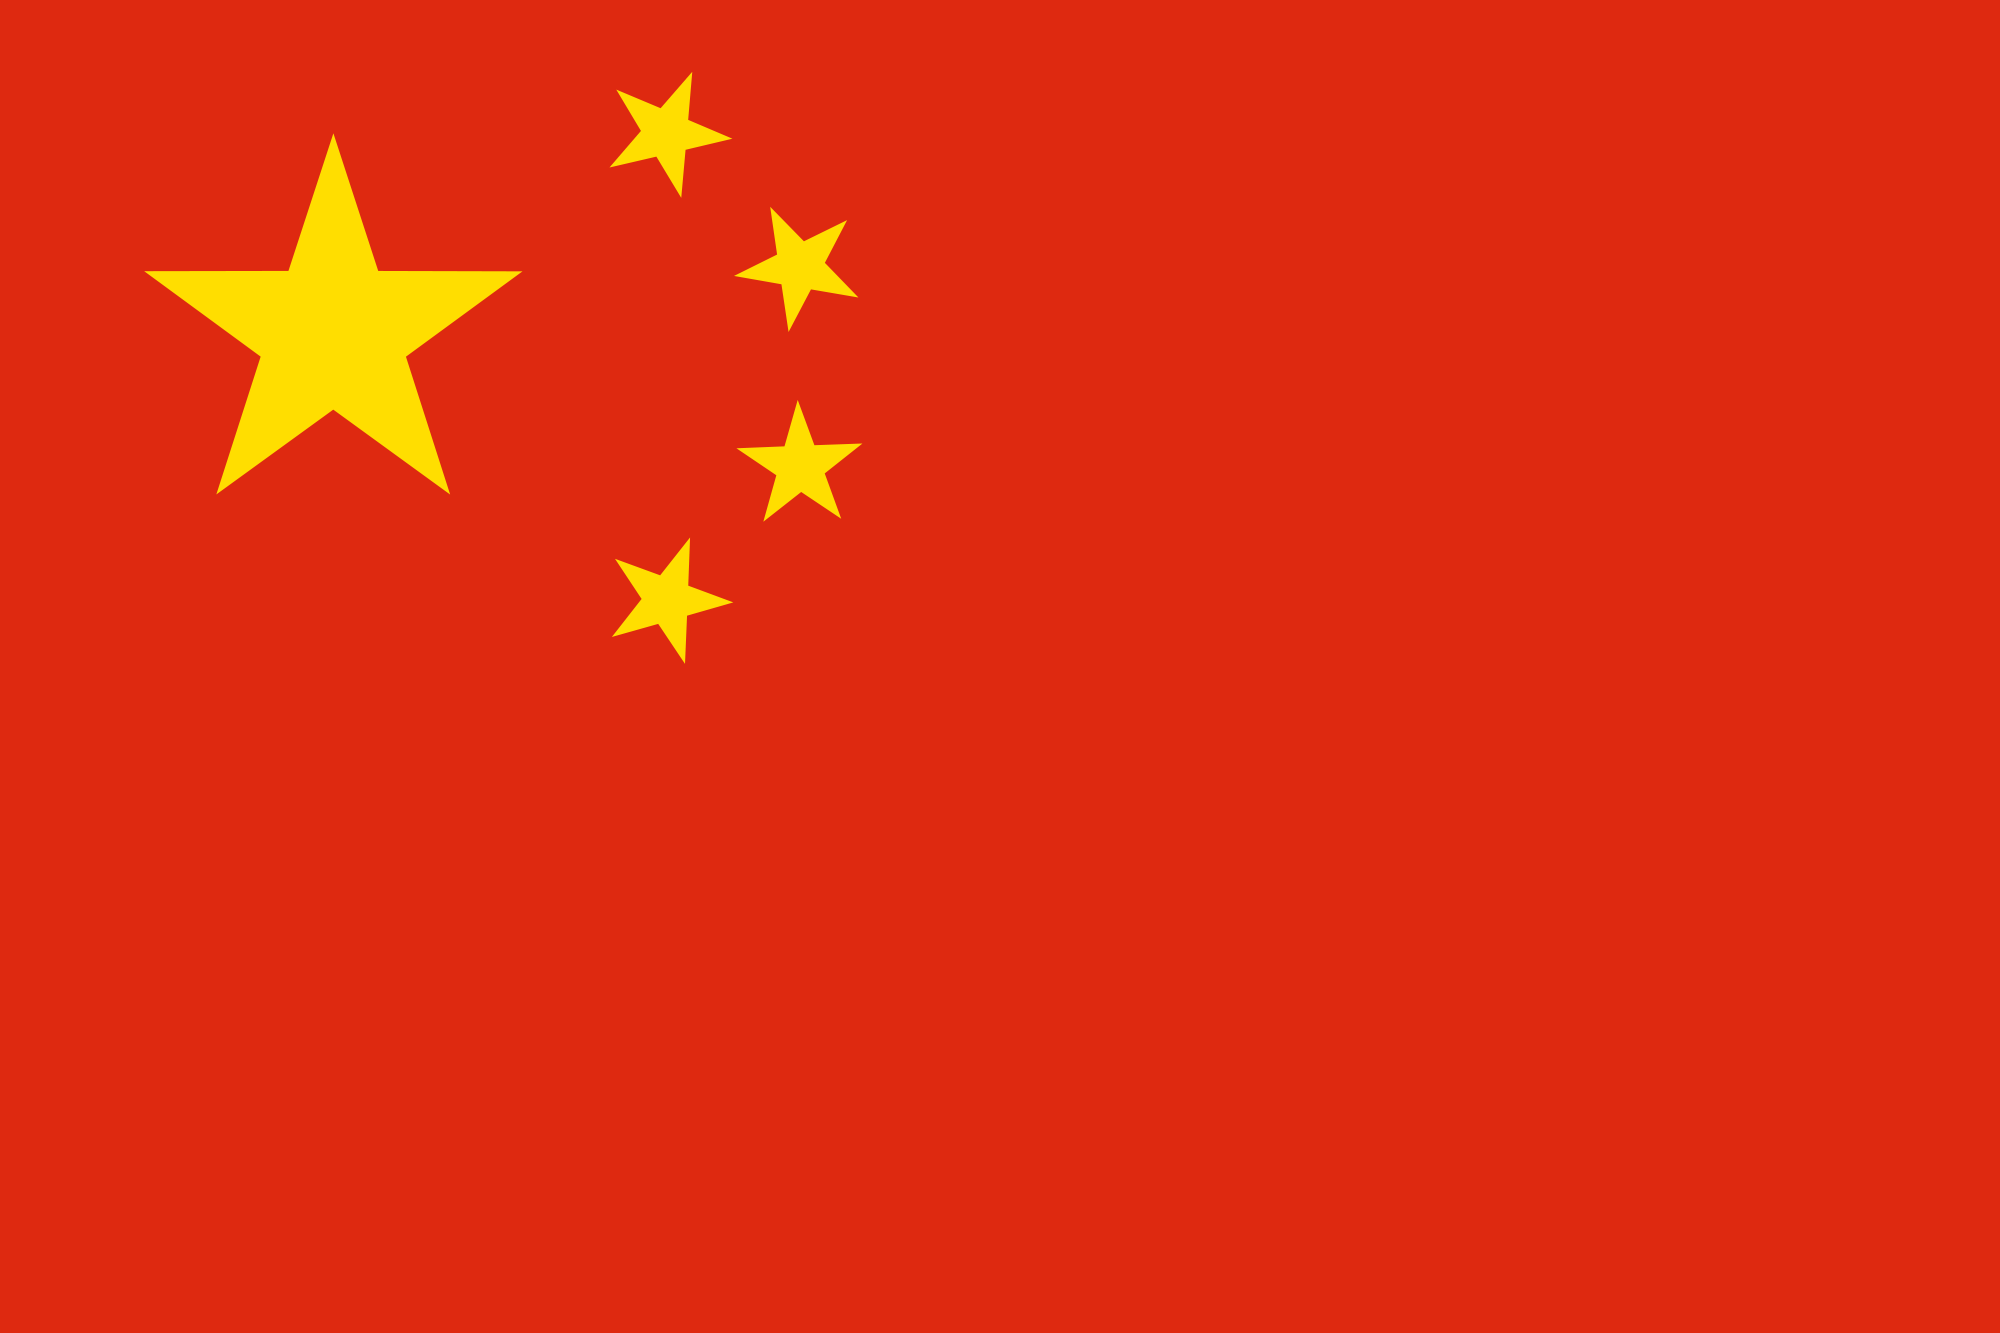 File:Flag of China.png - Wikimedia Commons